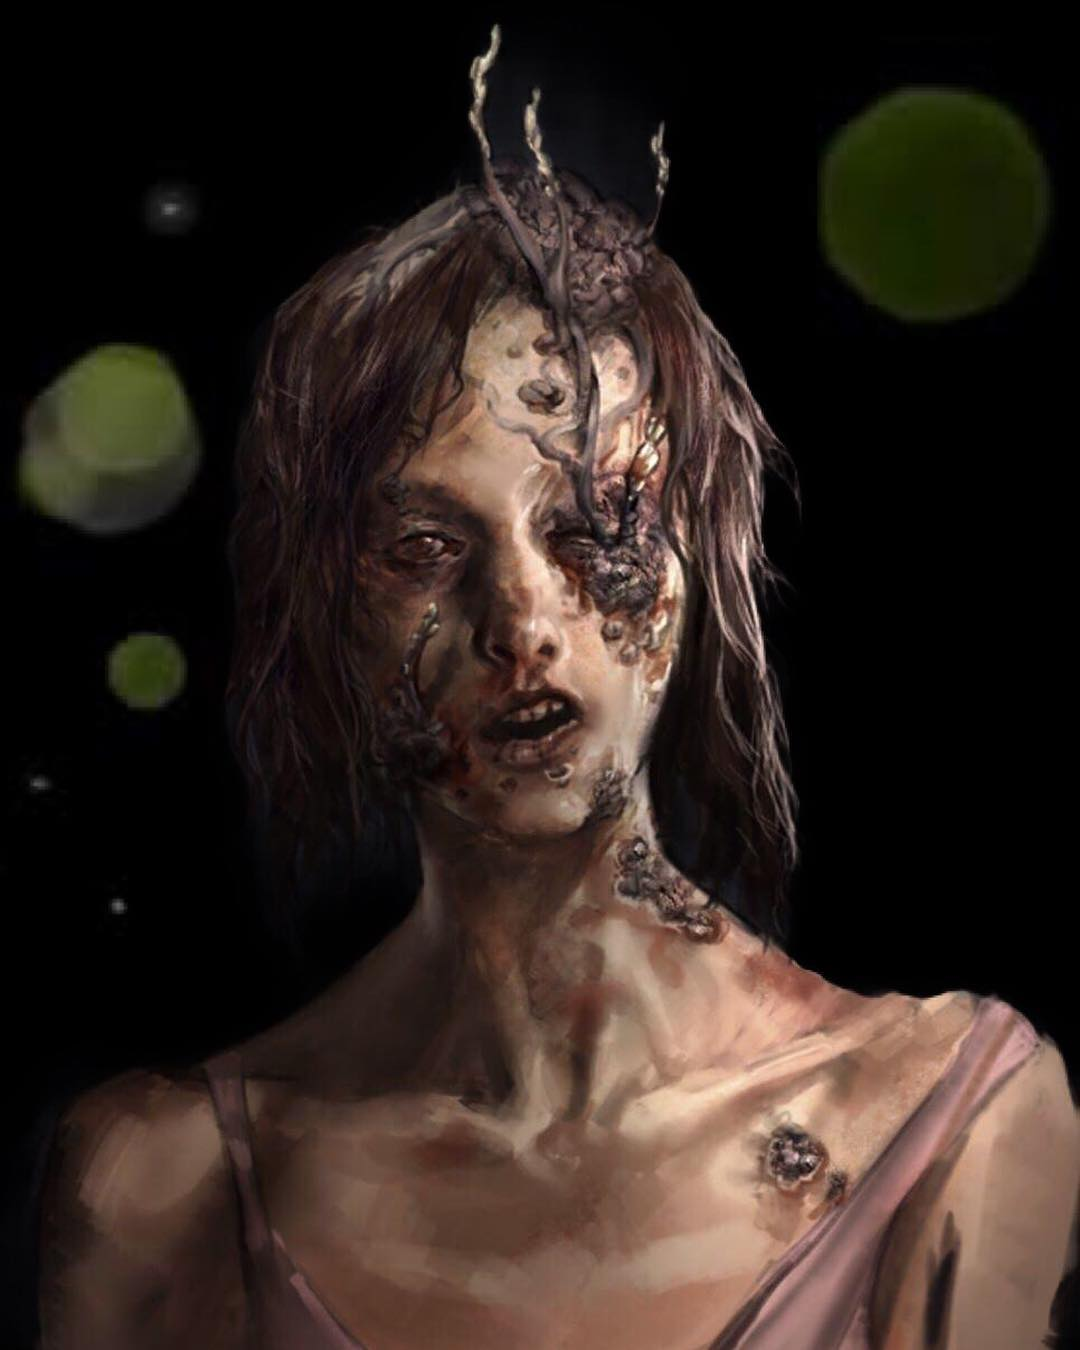 Pin by Zack ☣ on The Last of Us PS4 Zombie art